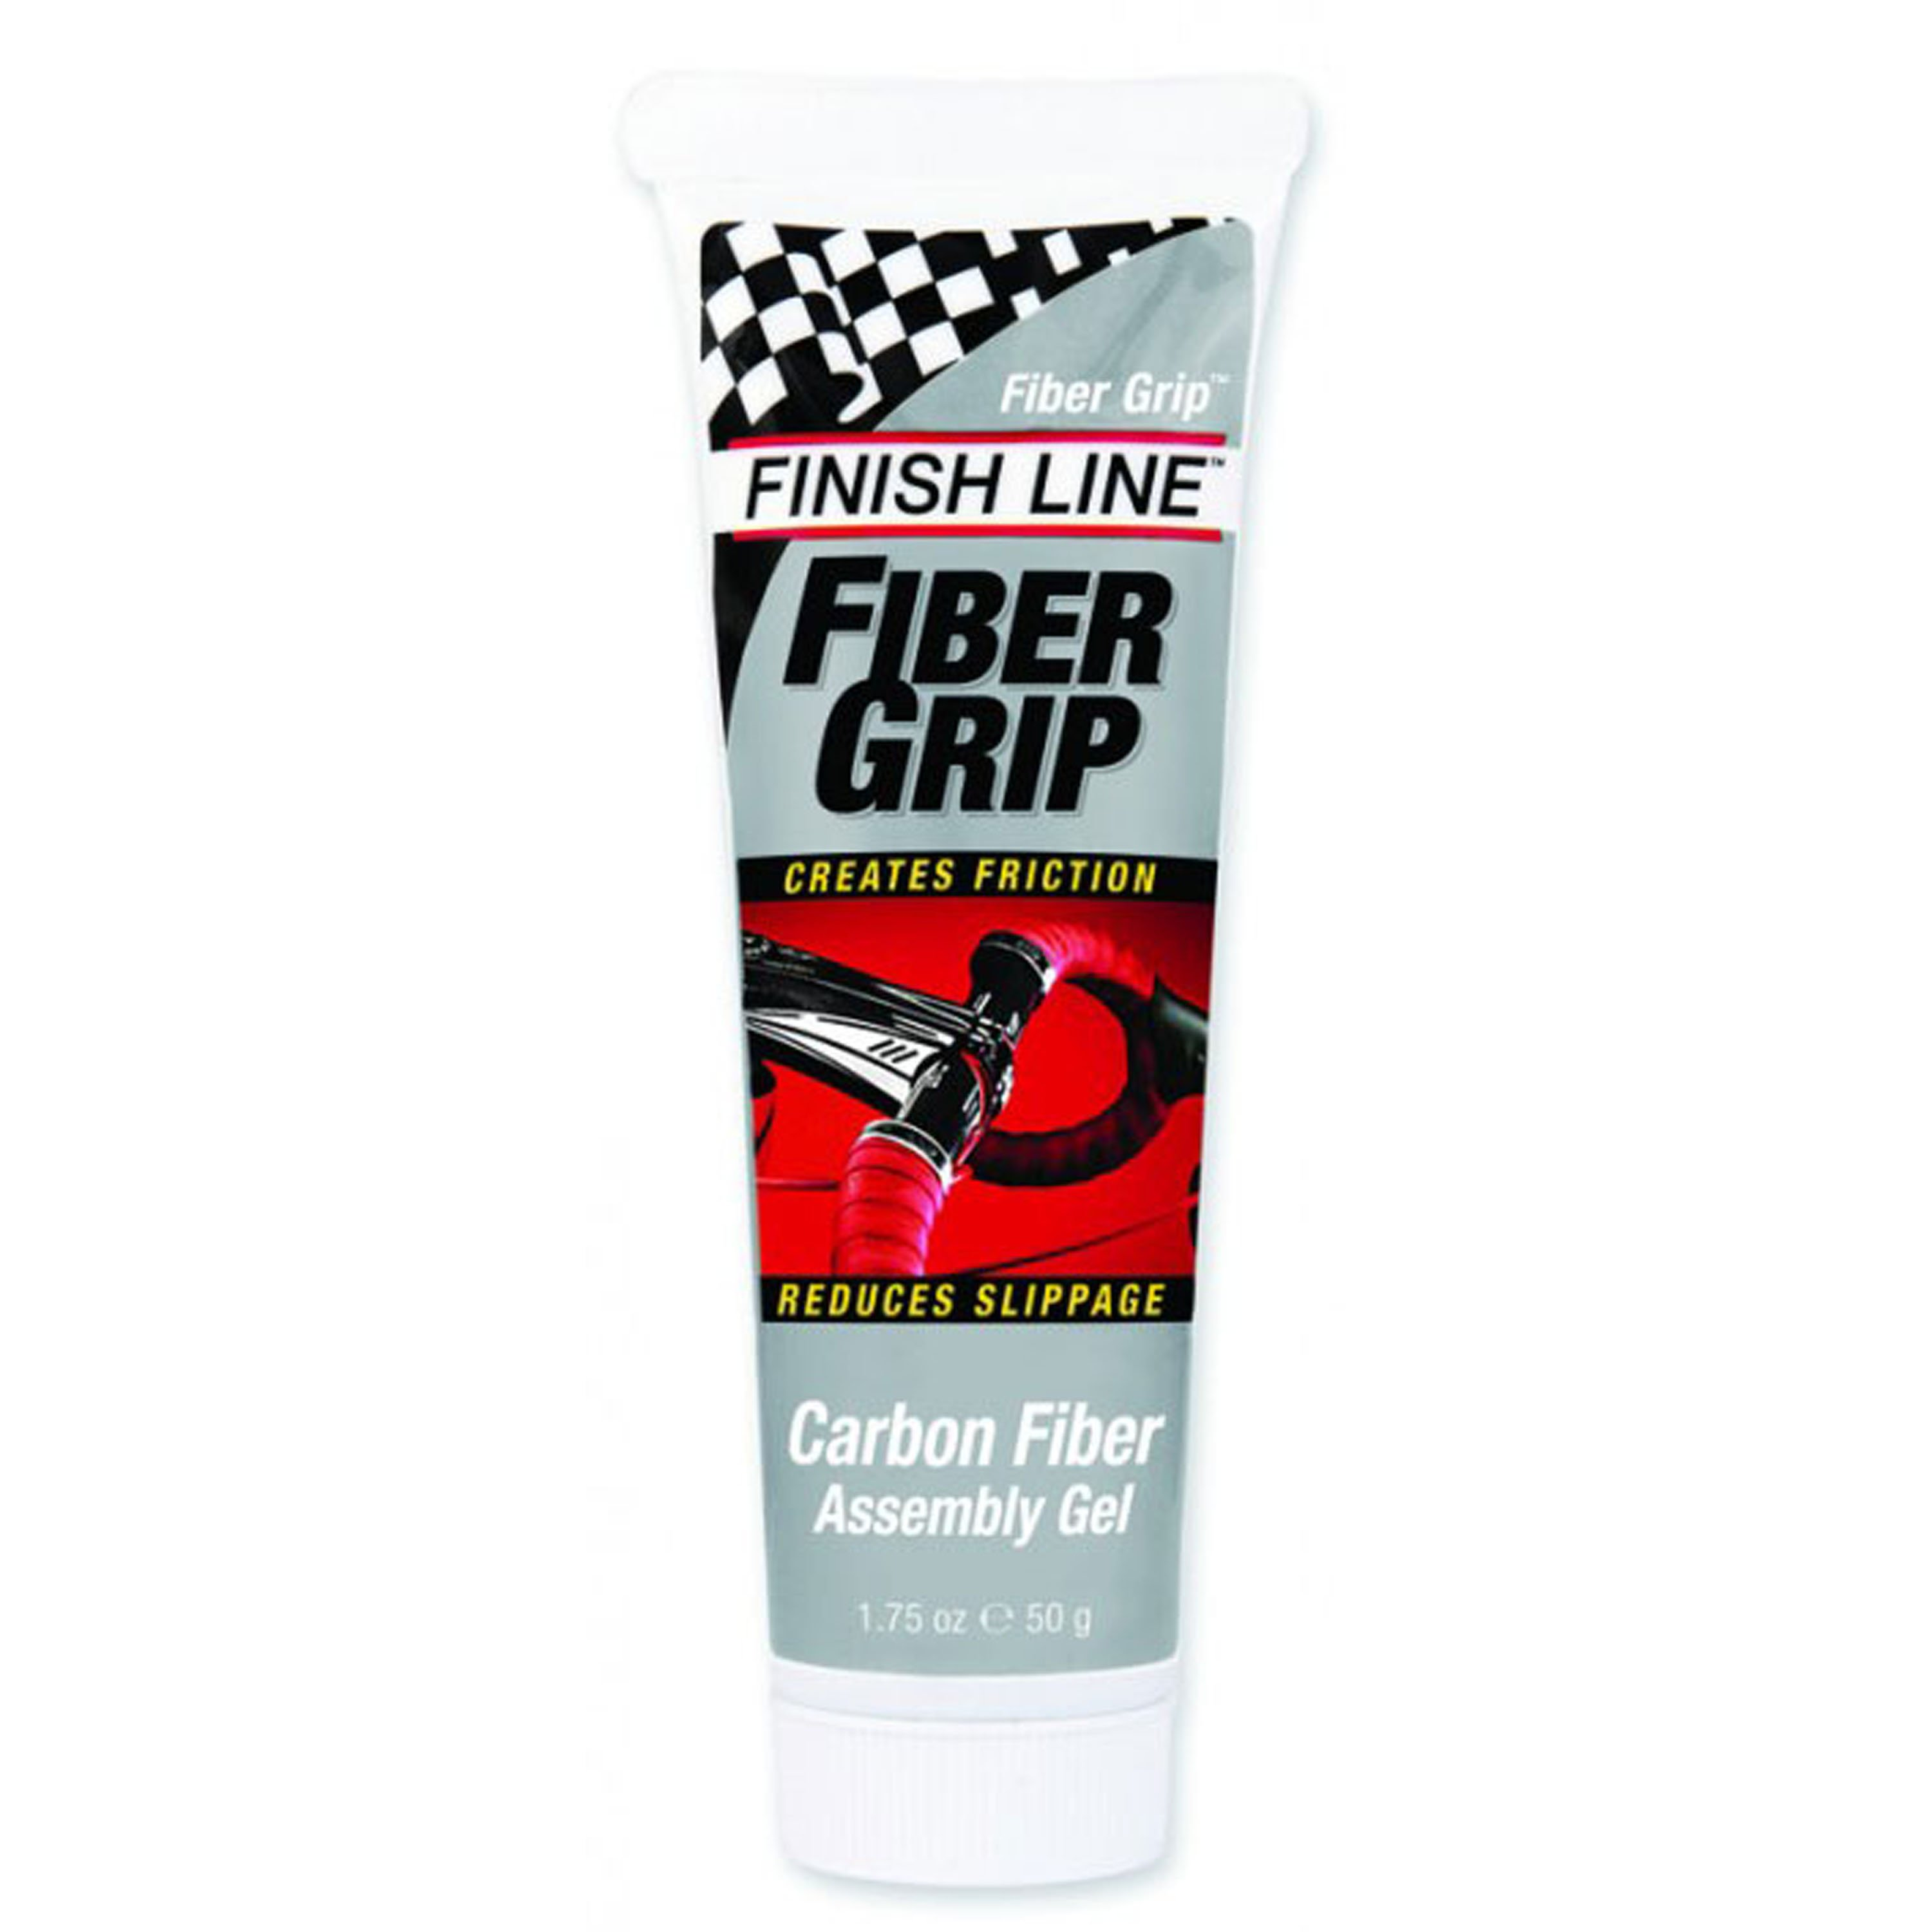 FINISHLINE Fiber Grip